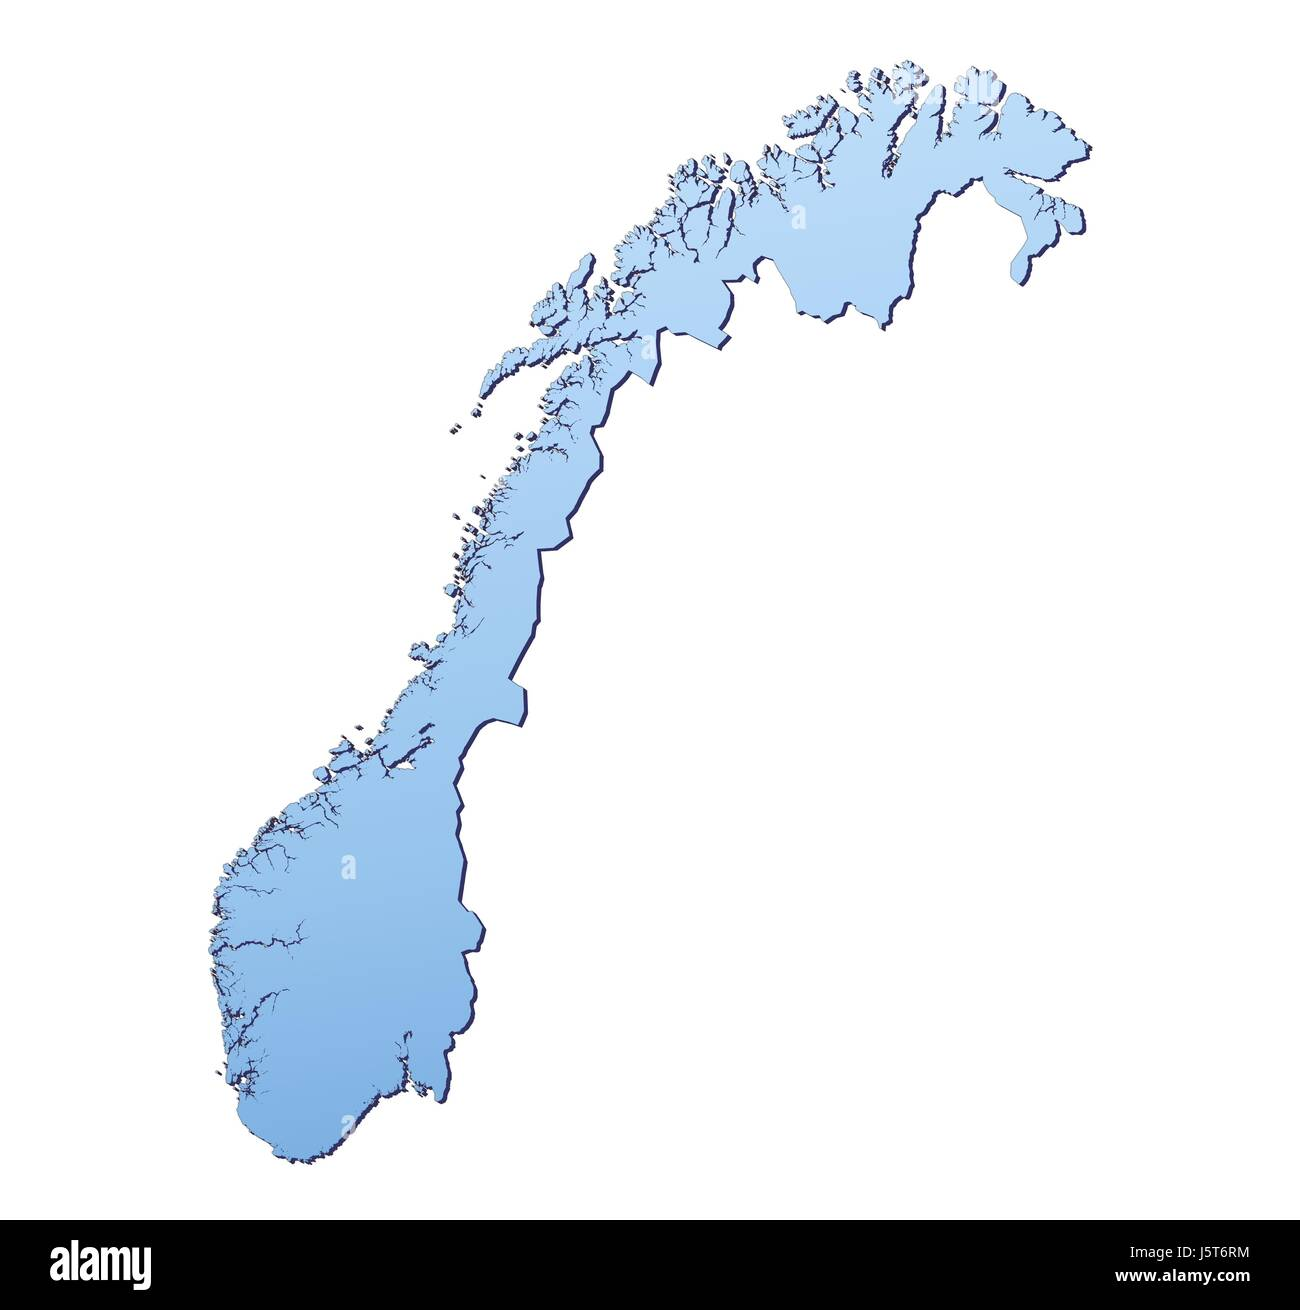 Blue isolated norway outline gradient map atlas map of the world blue isolated norway outline gradient map atlas map of the world backdrop gumiabroncs Choice Image